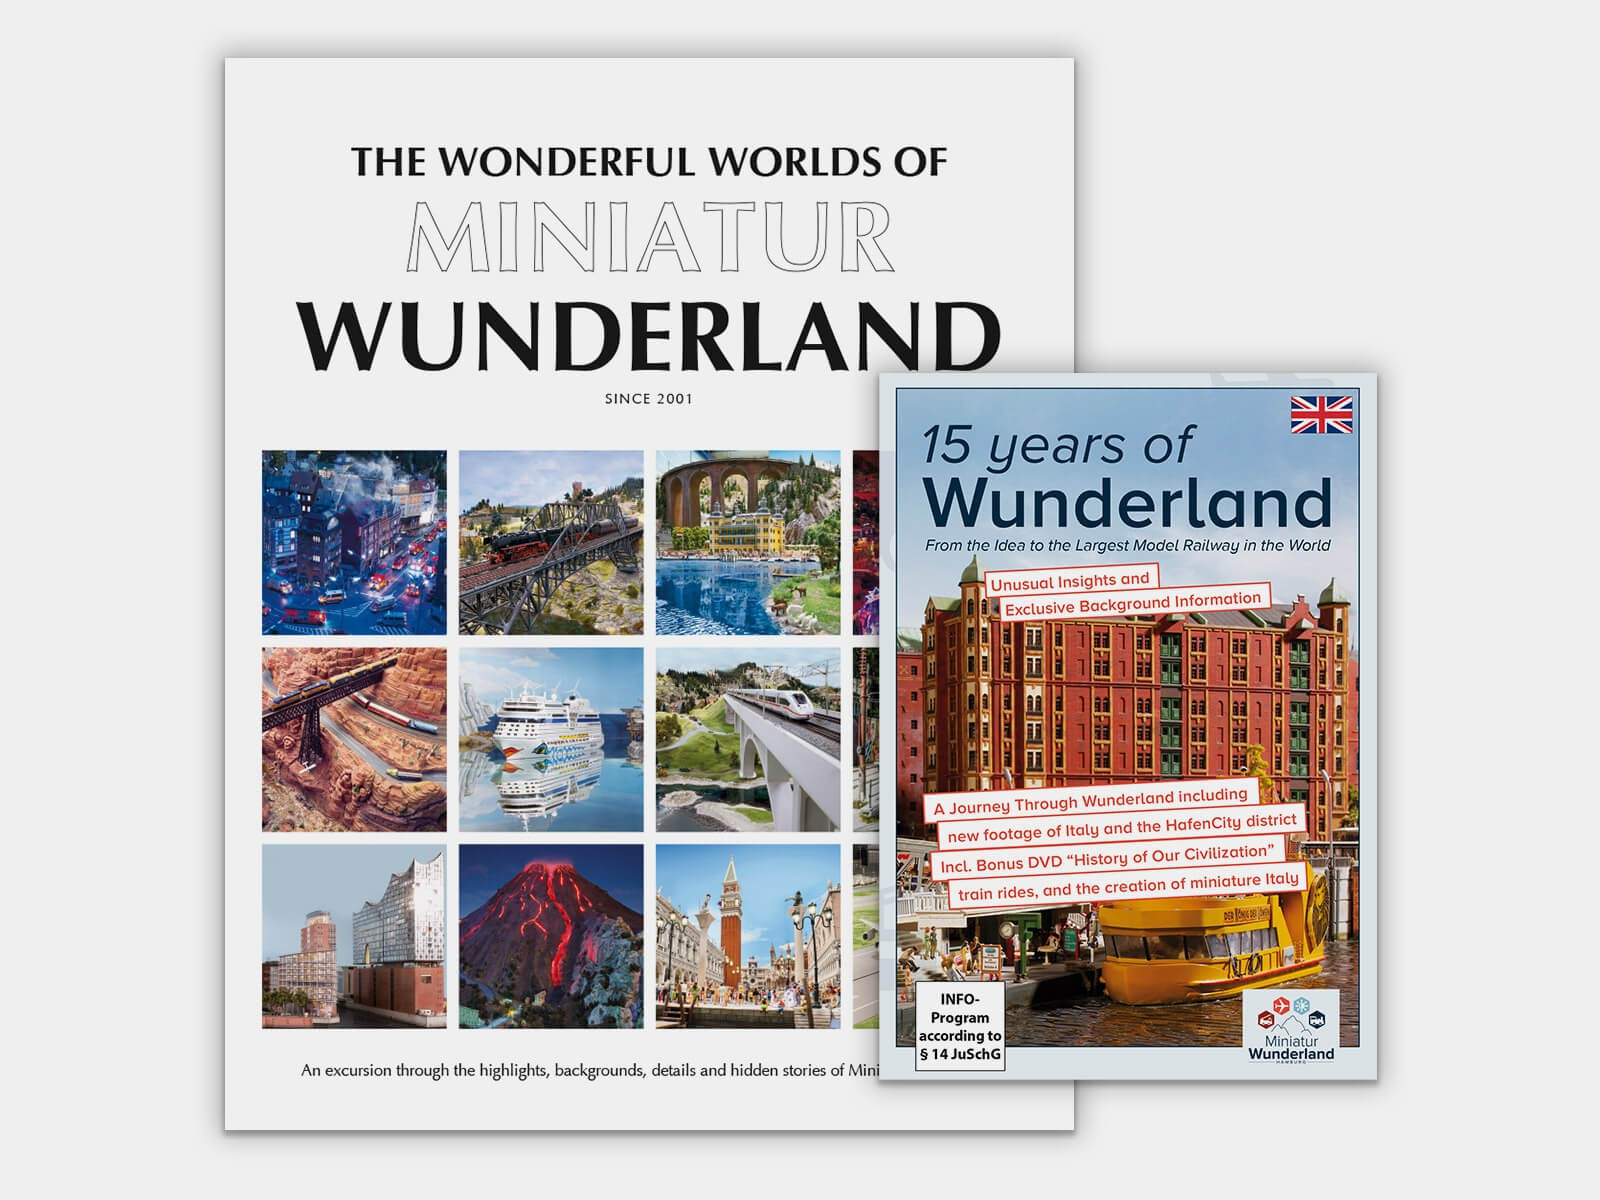 """Combo Offer """"The Wonderful Worlds of Miniatur Wunderland"""" Book & DVD """"15 Years Wunderland"""""""